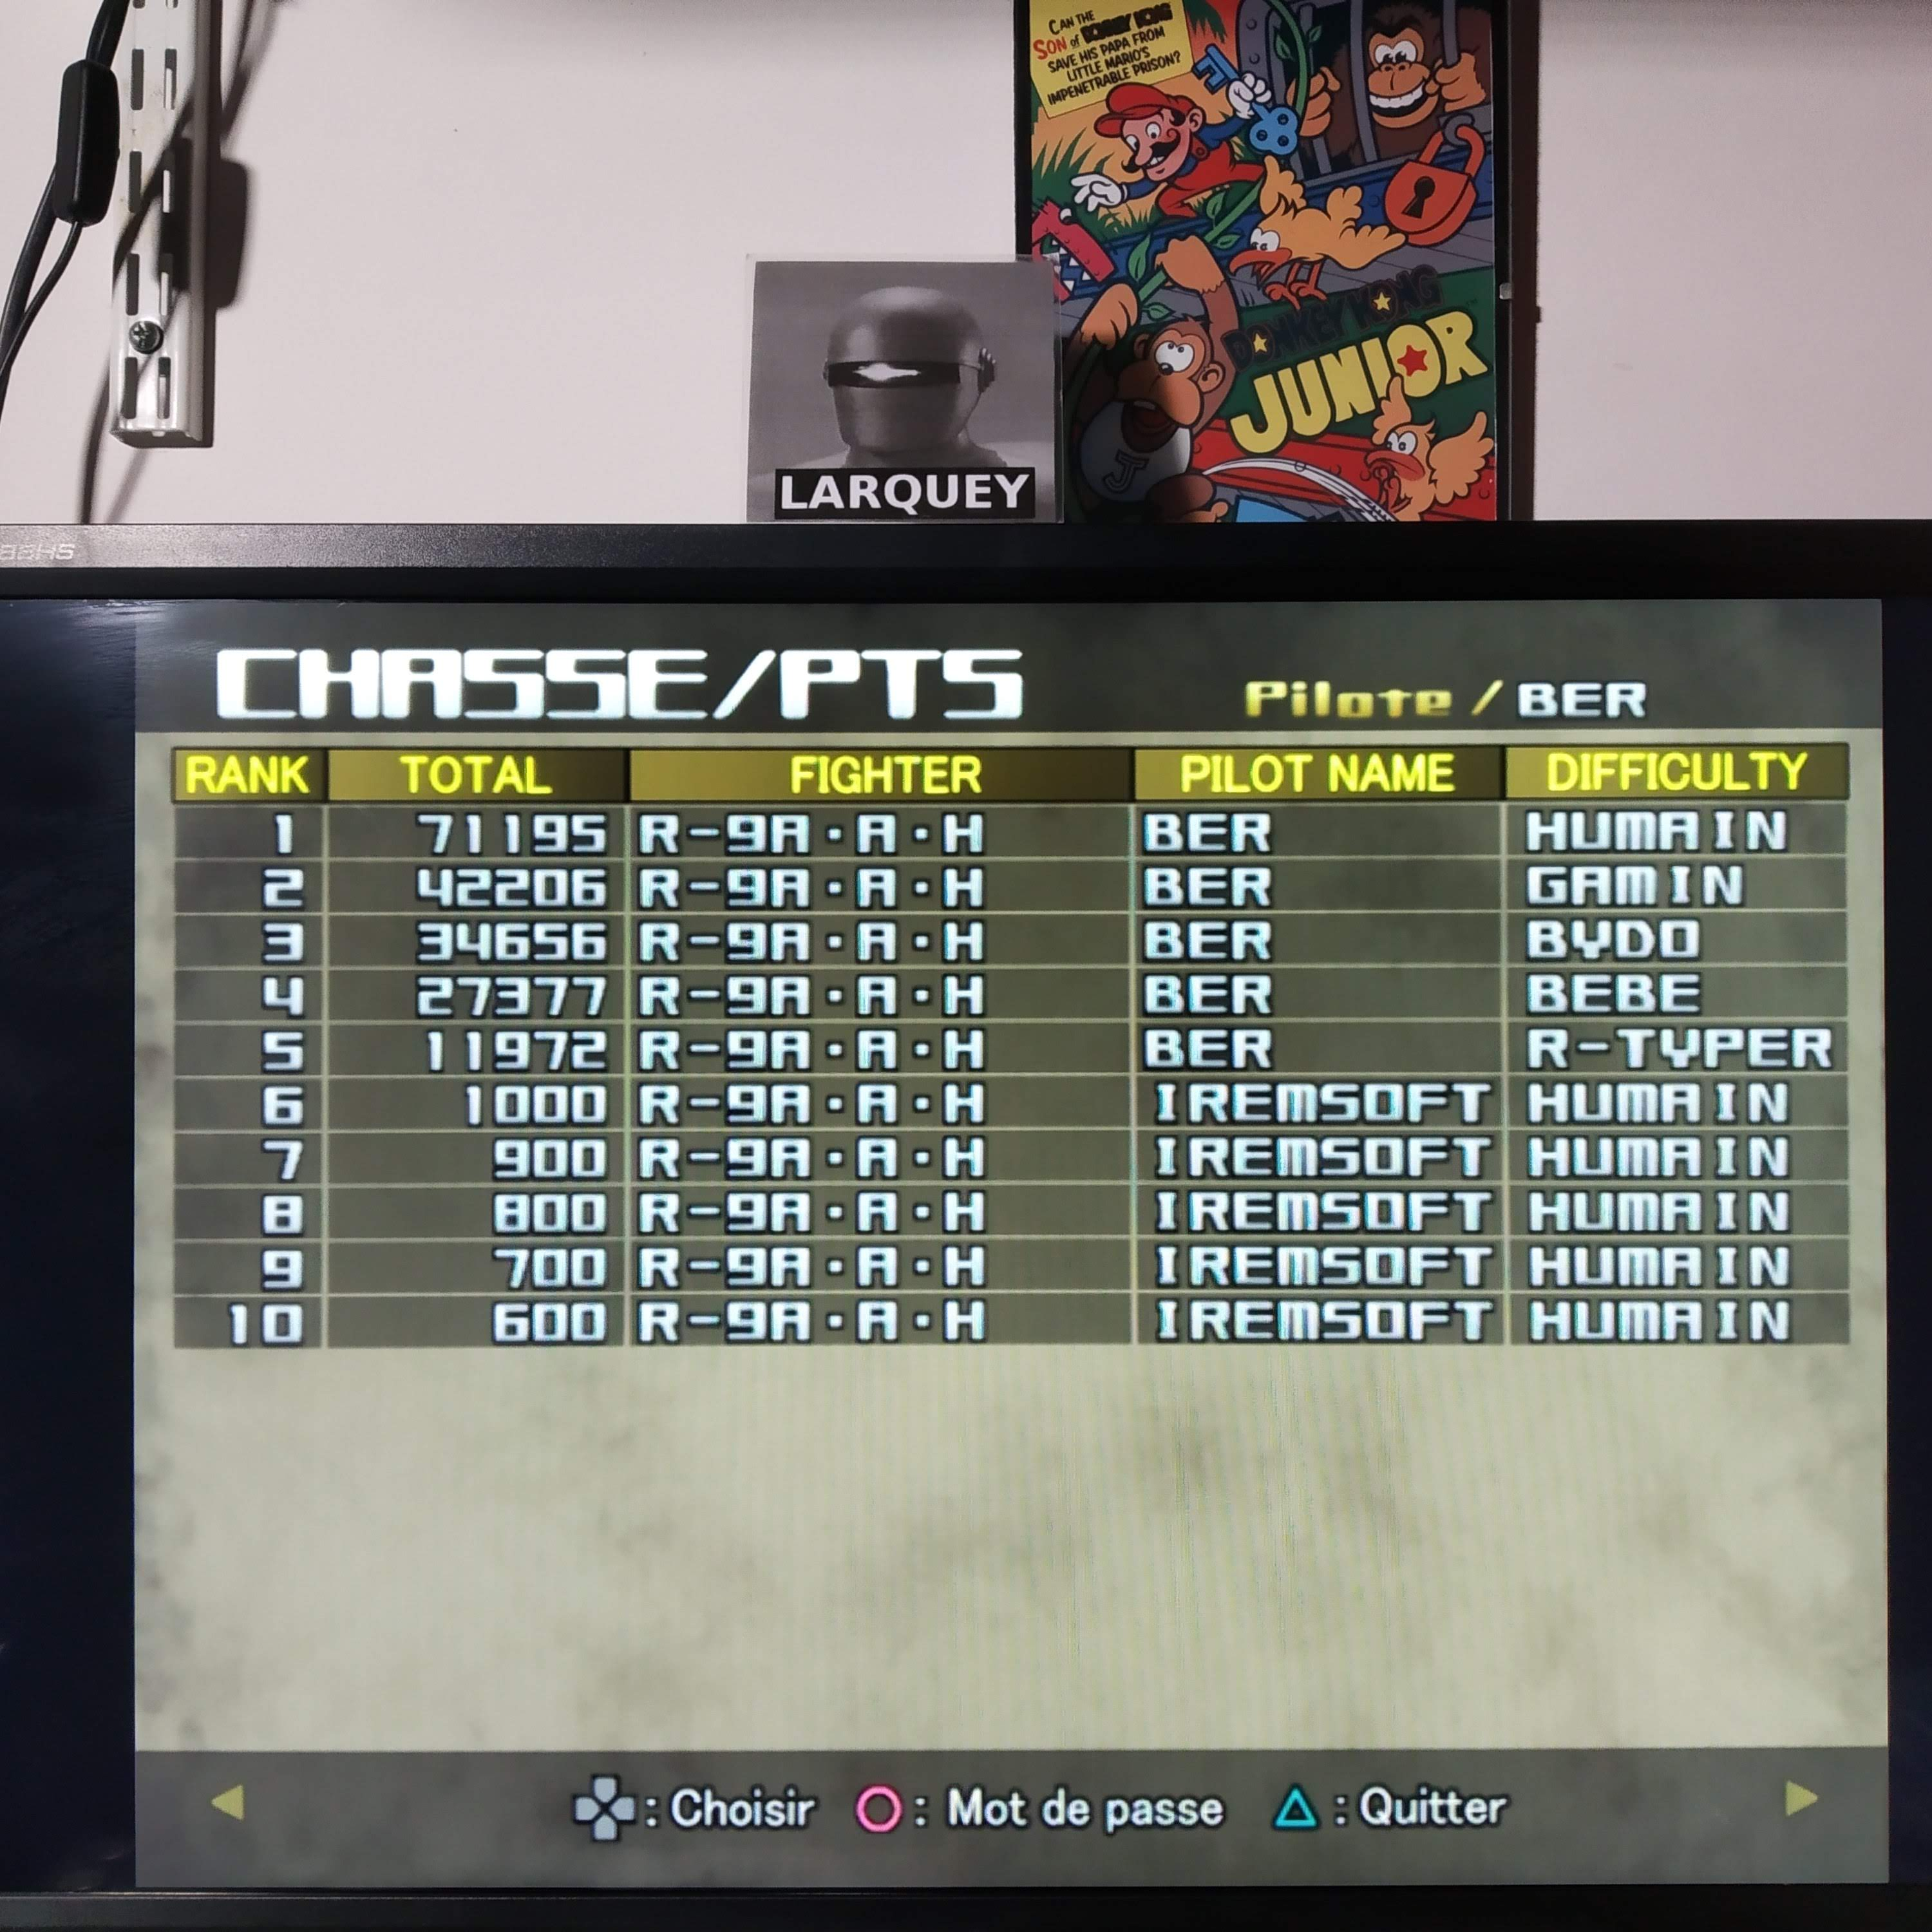 Larquey: R-Type Final [R-Typer] (Playstation 2 Emulated) 11,972 points on 2020-08-11 15:26:33